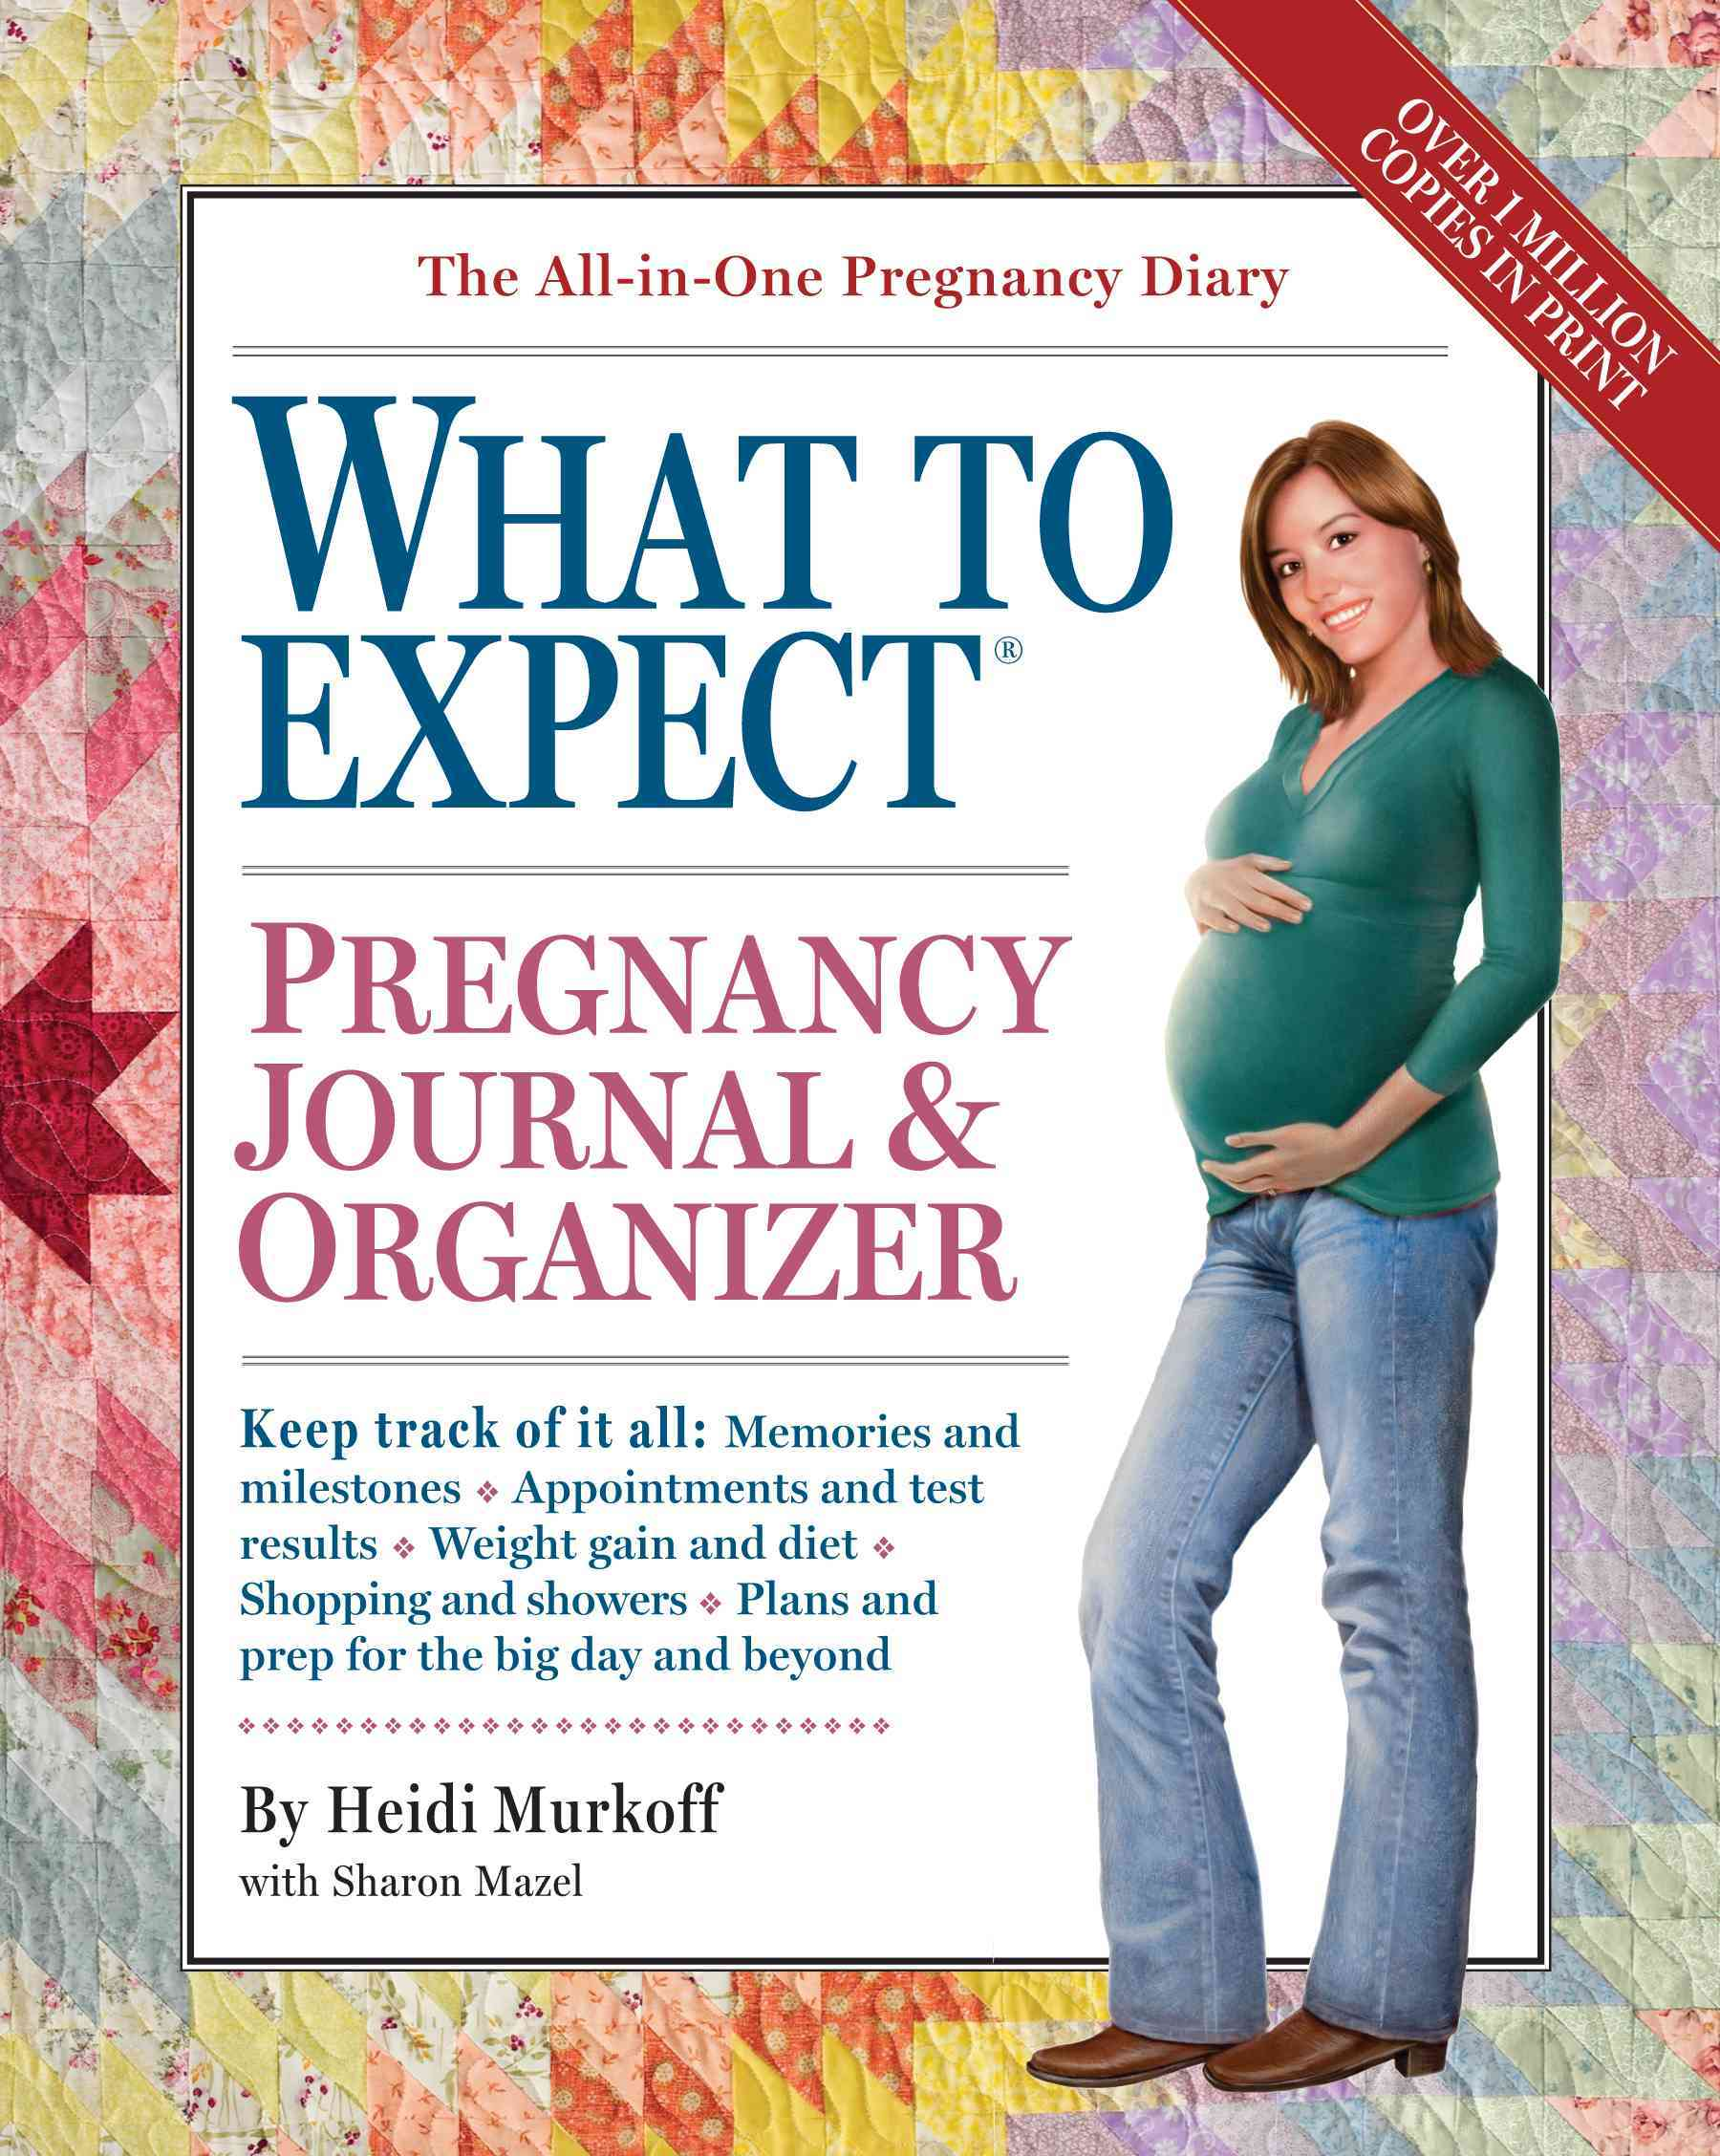 What to Expect Pregnancy Journal & Organizer (Notebook / blank book)